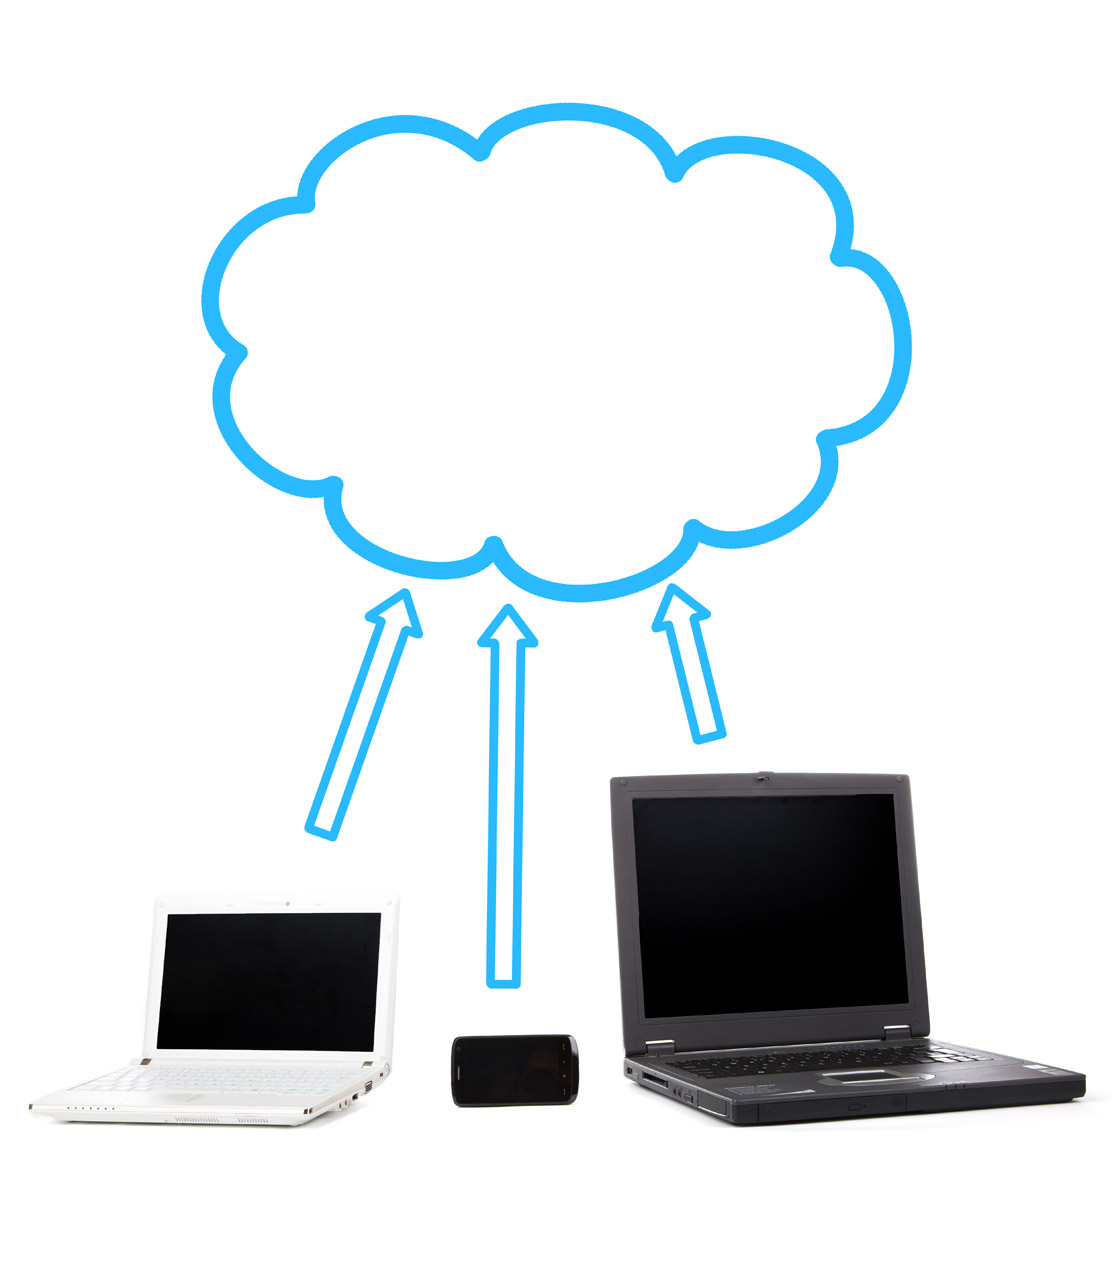 Cloud Computing for Plumbing or Electrical Contractors